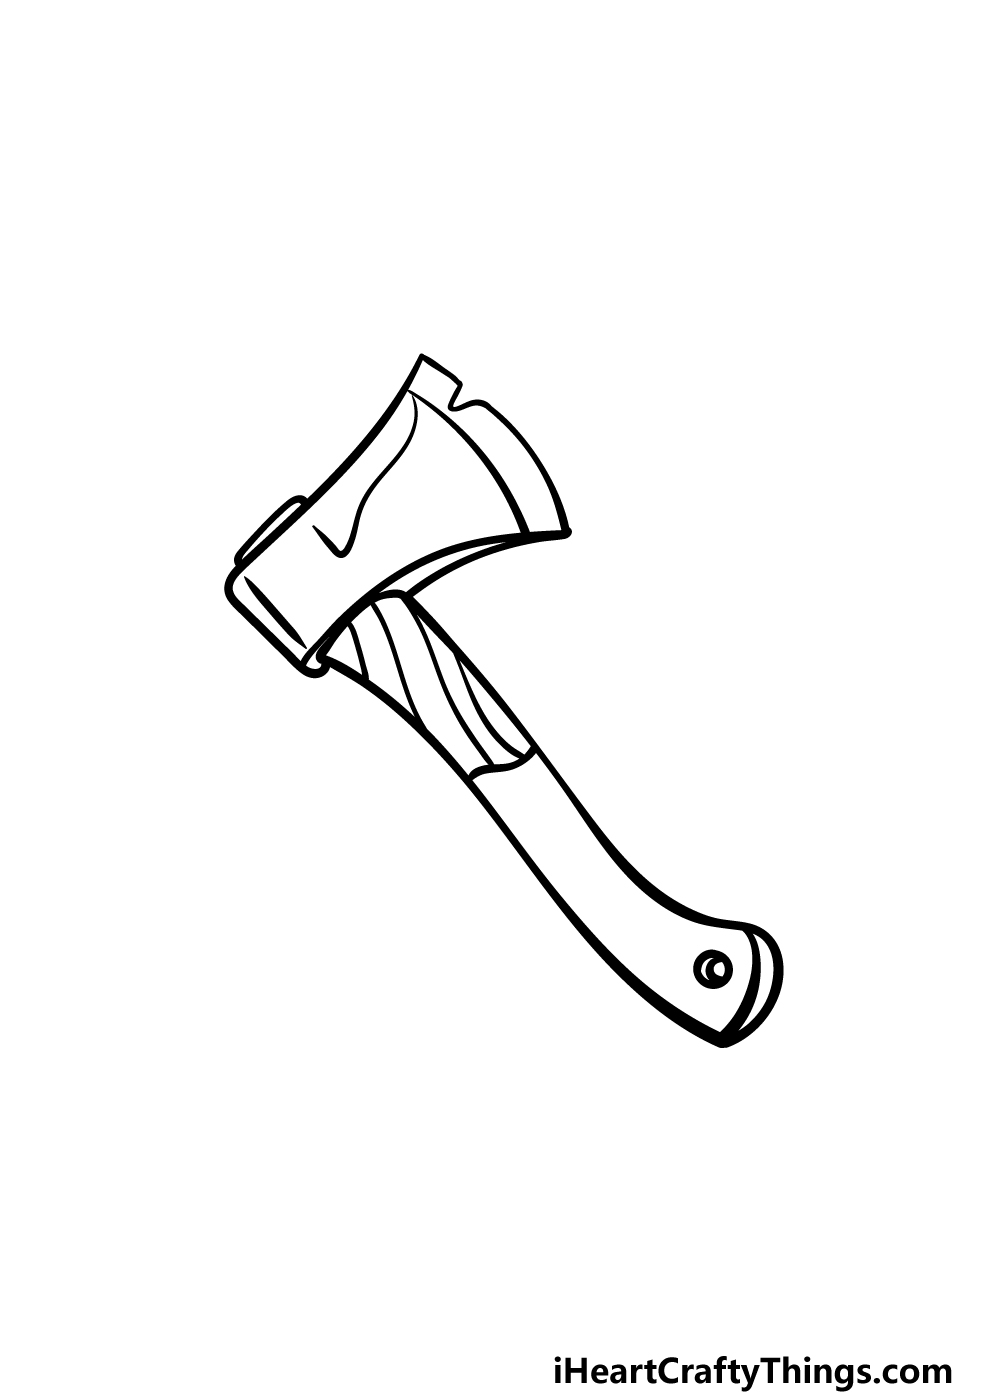 drawing an axe step 5